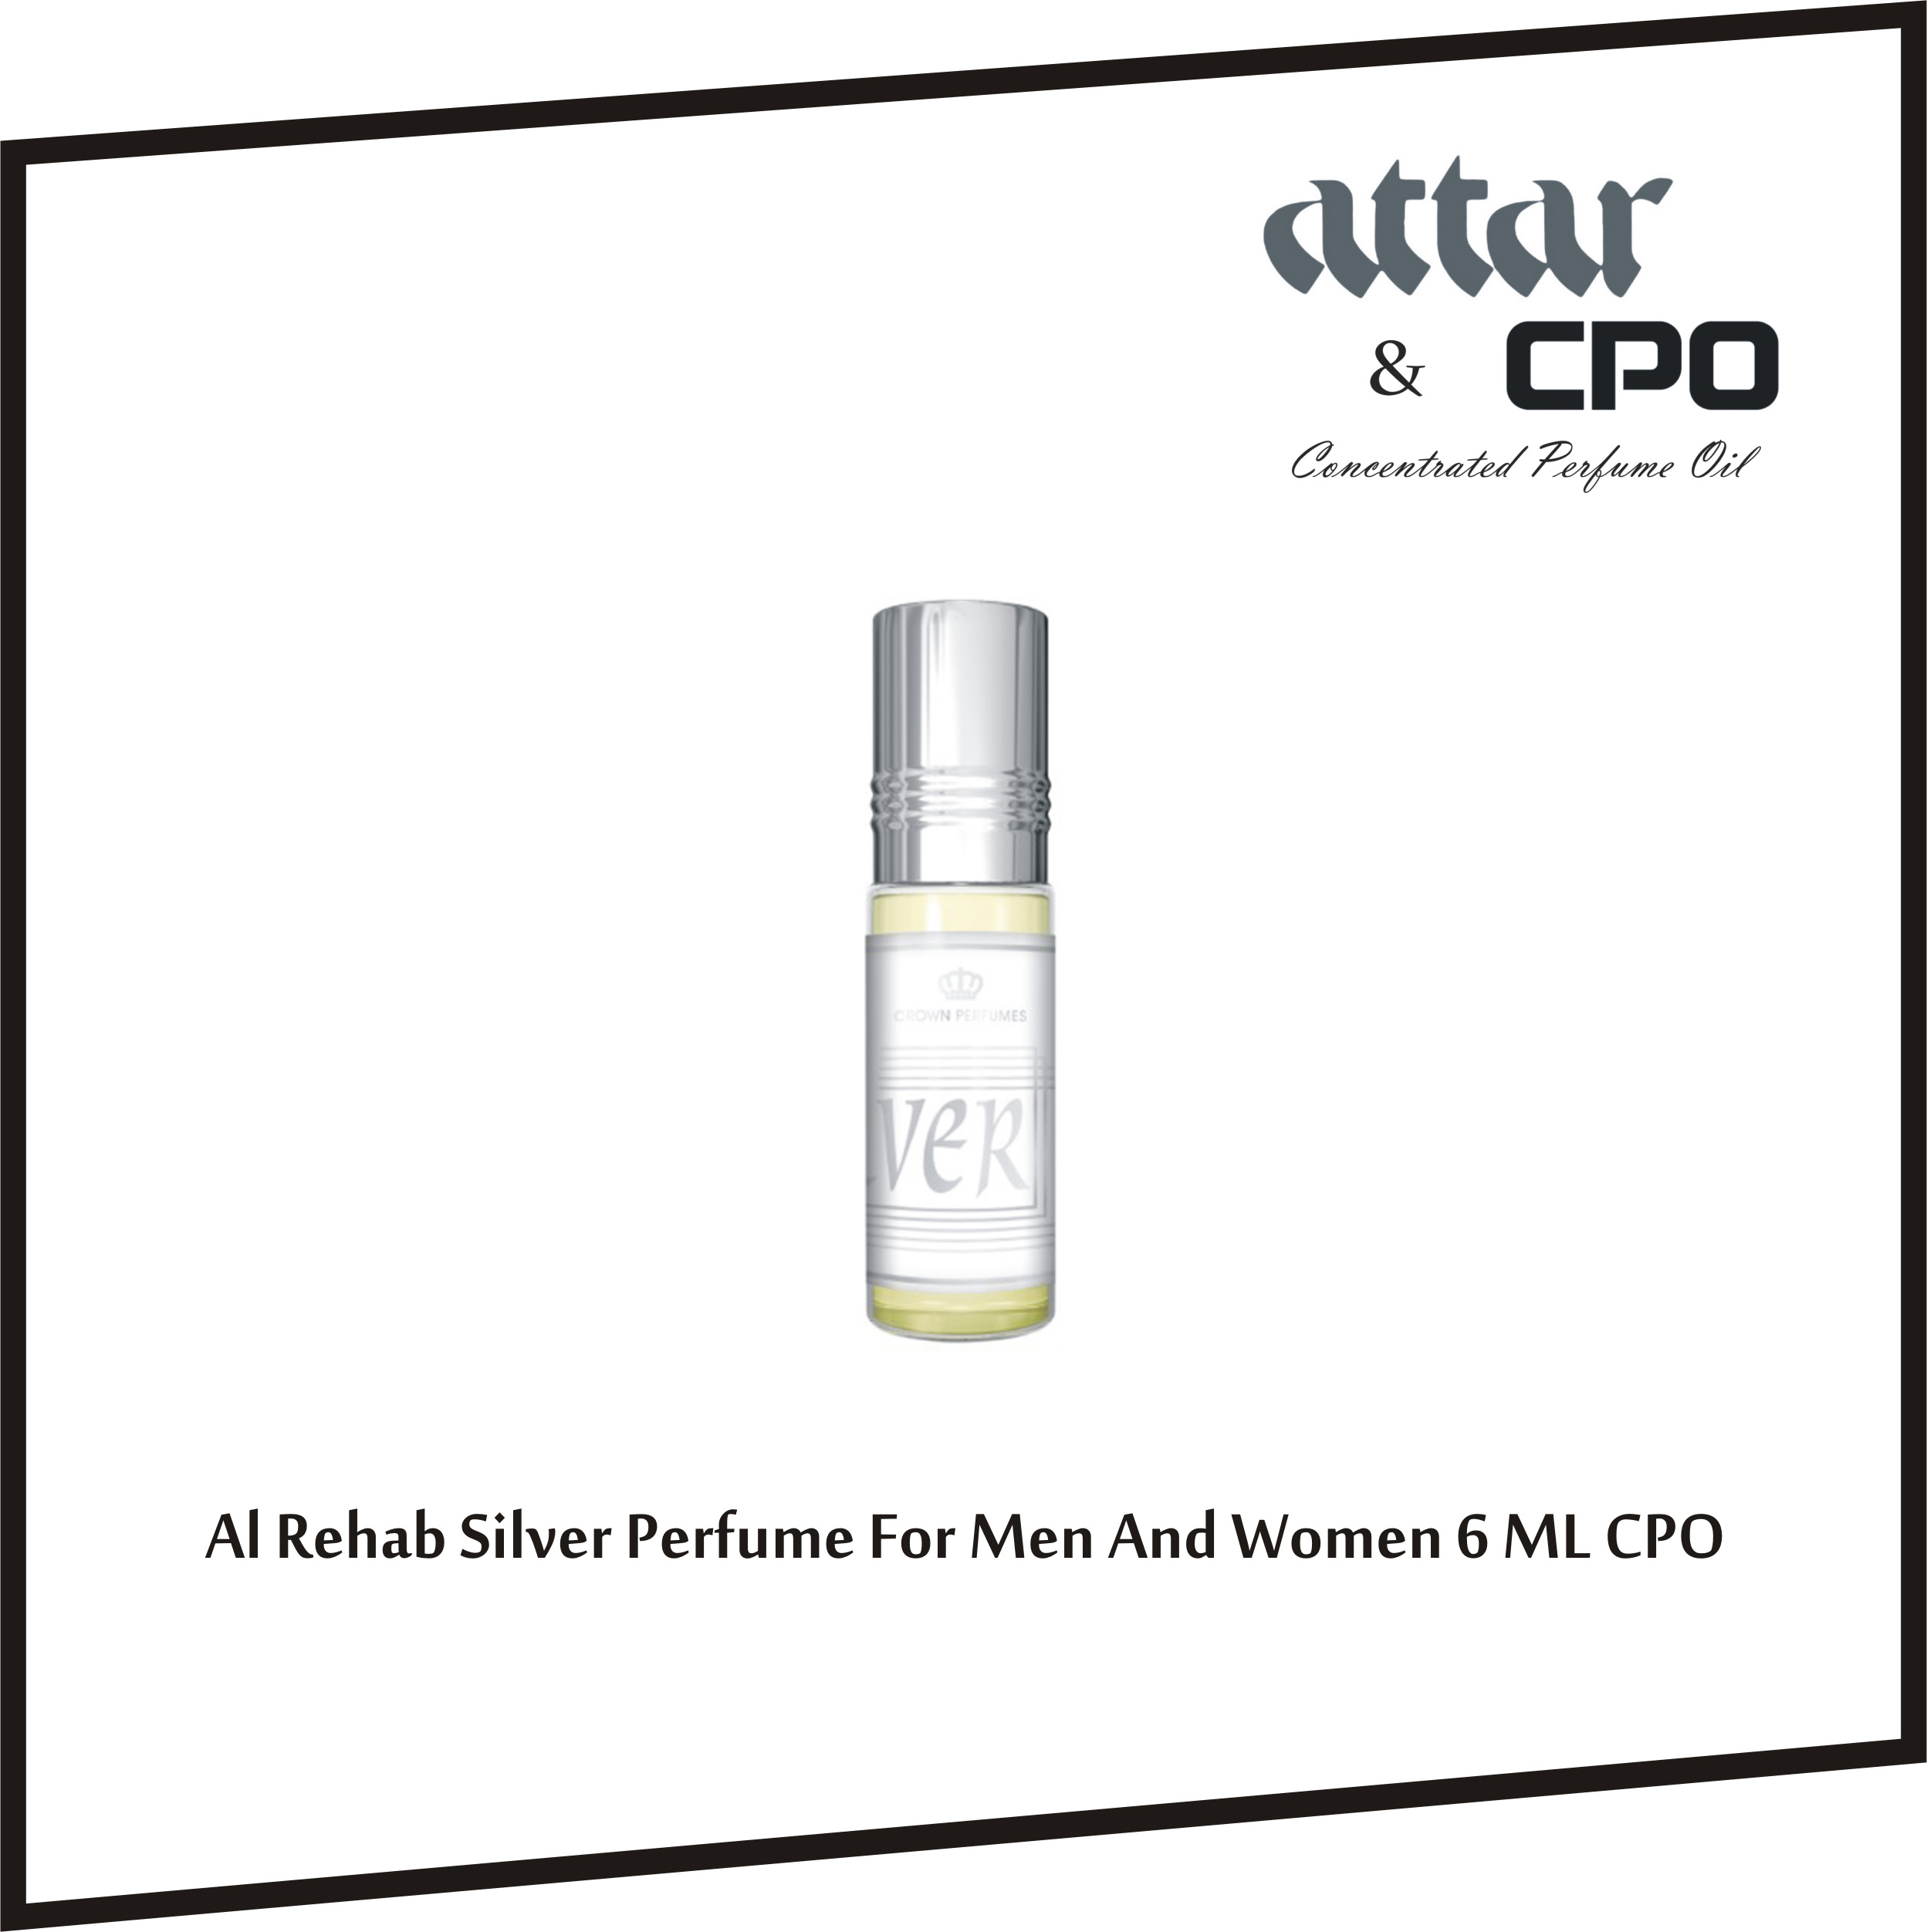 al-rehab-silver-perfume-for-men-and-women